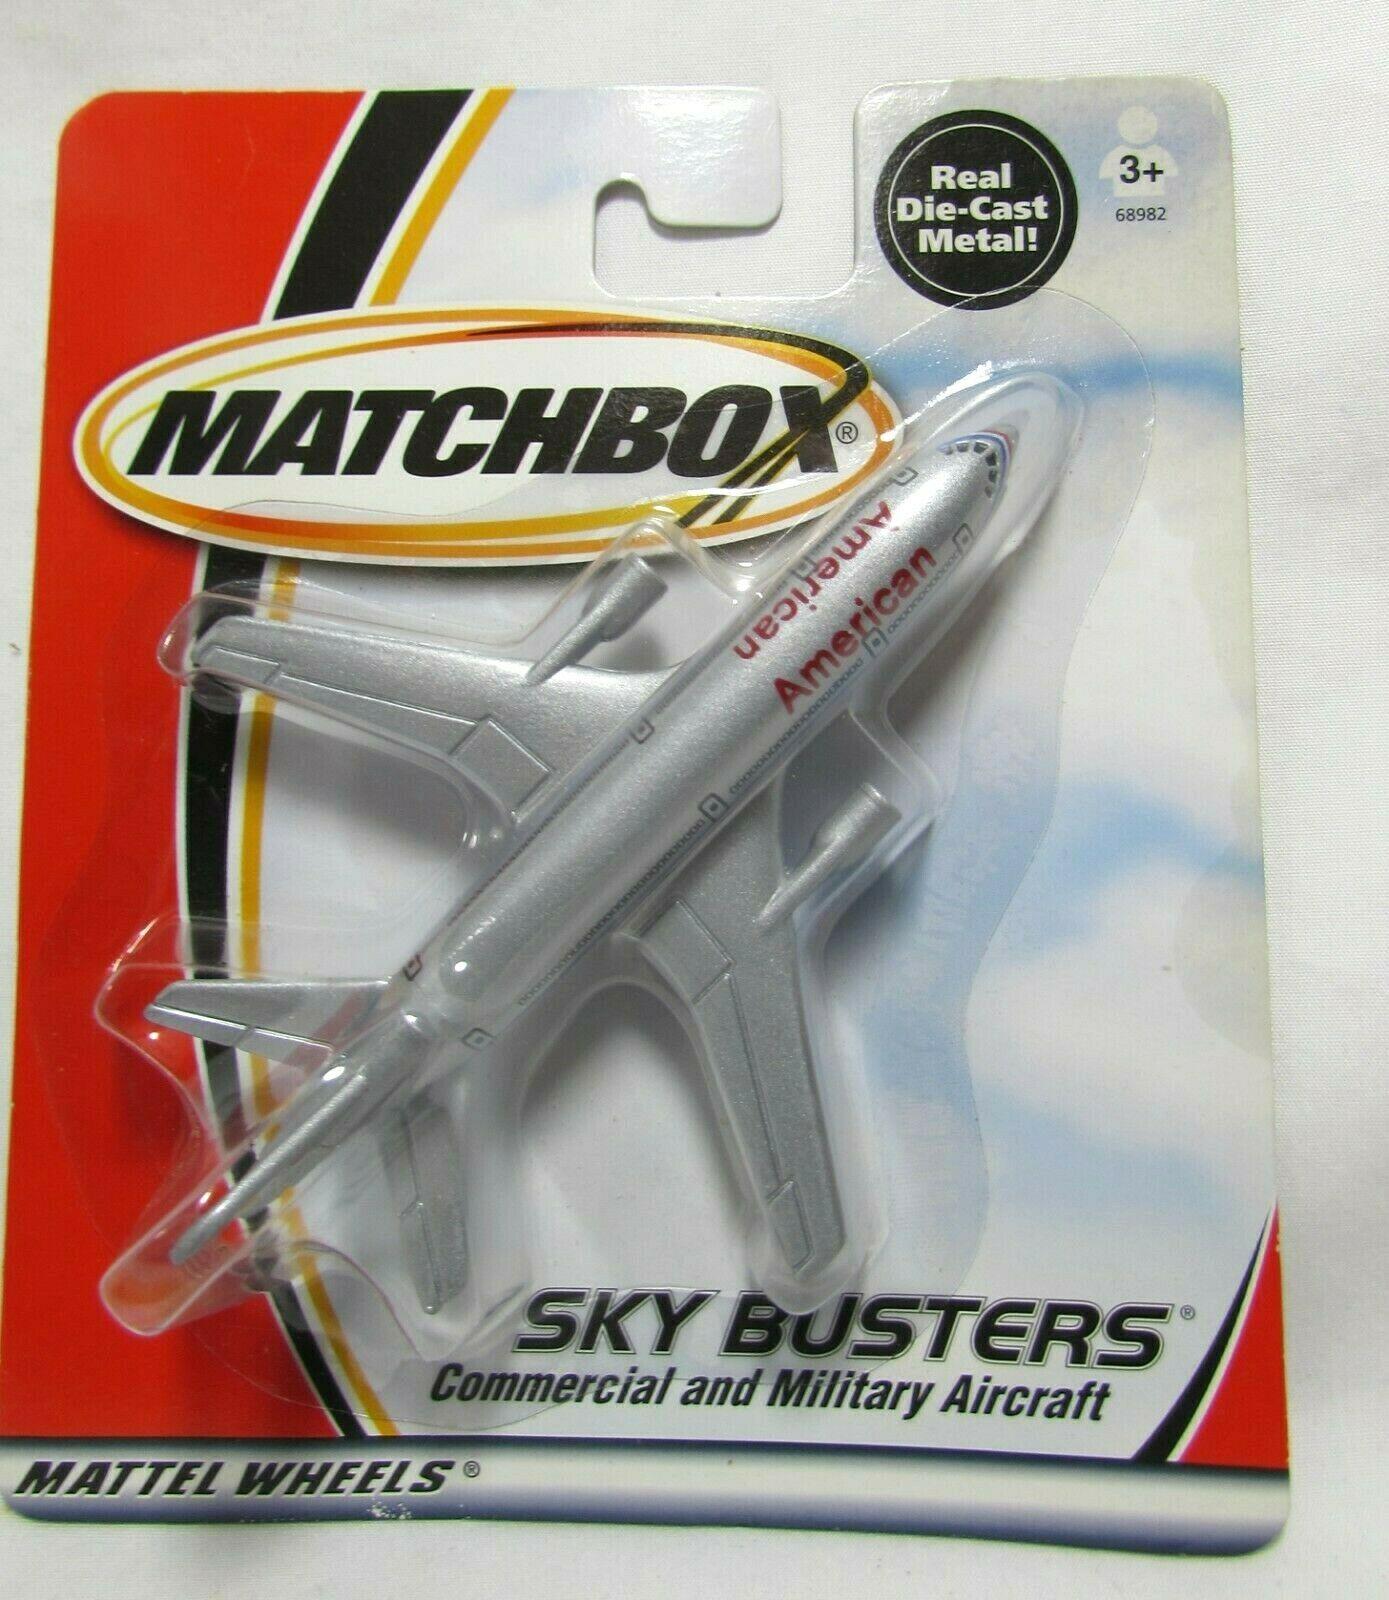 2000 LUFTHANSA DIE-CAST MATCHBOX  SKY BUSTERS AIRPLANE MATTEL WHEELS